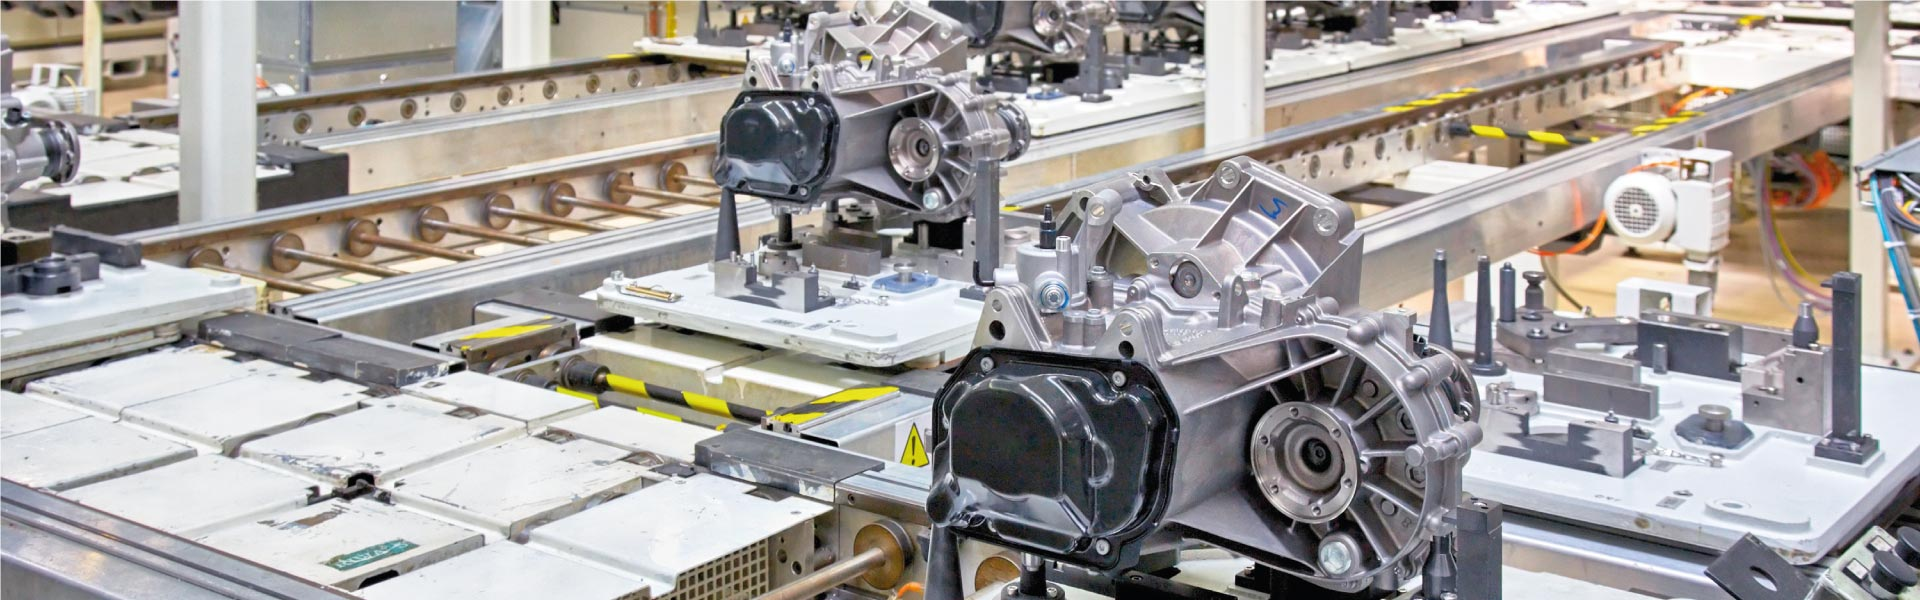 Commercial Manufacturing